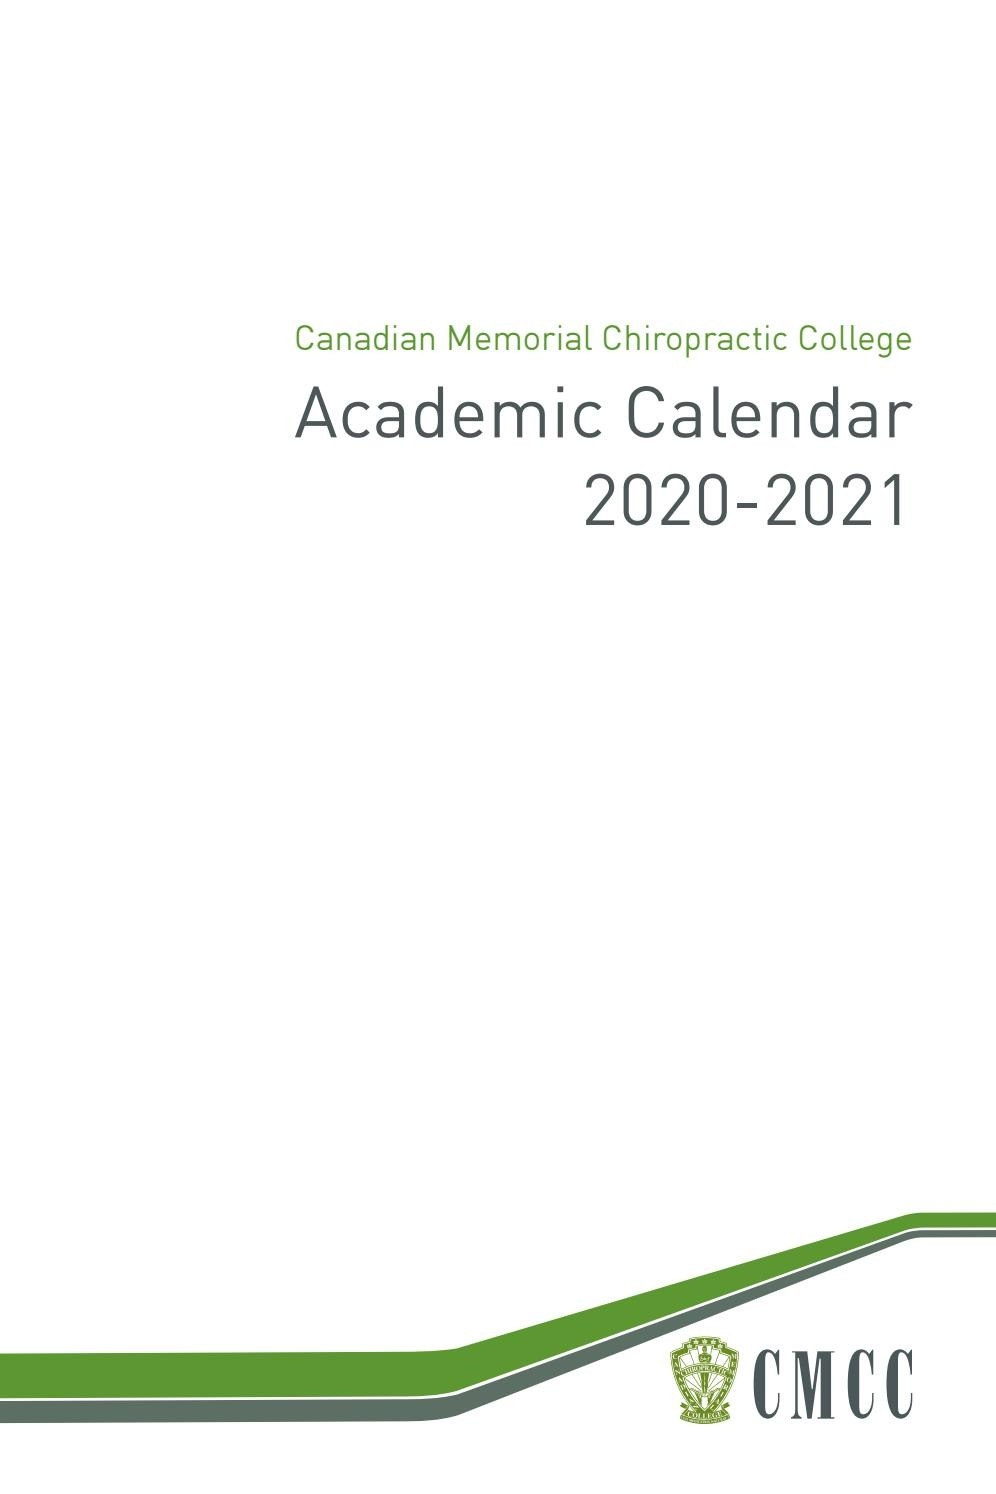 Academic Calendar 2020-2021Canadian Memorial  How Many Weeks In The 2021/19 Financial Year